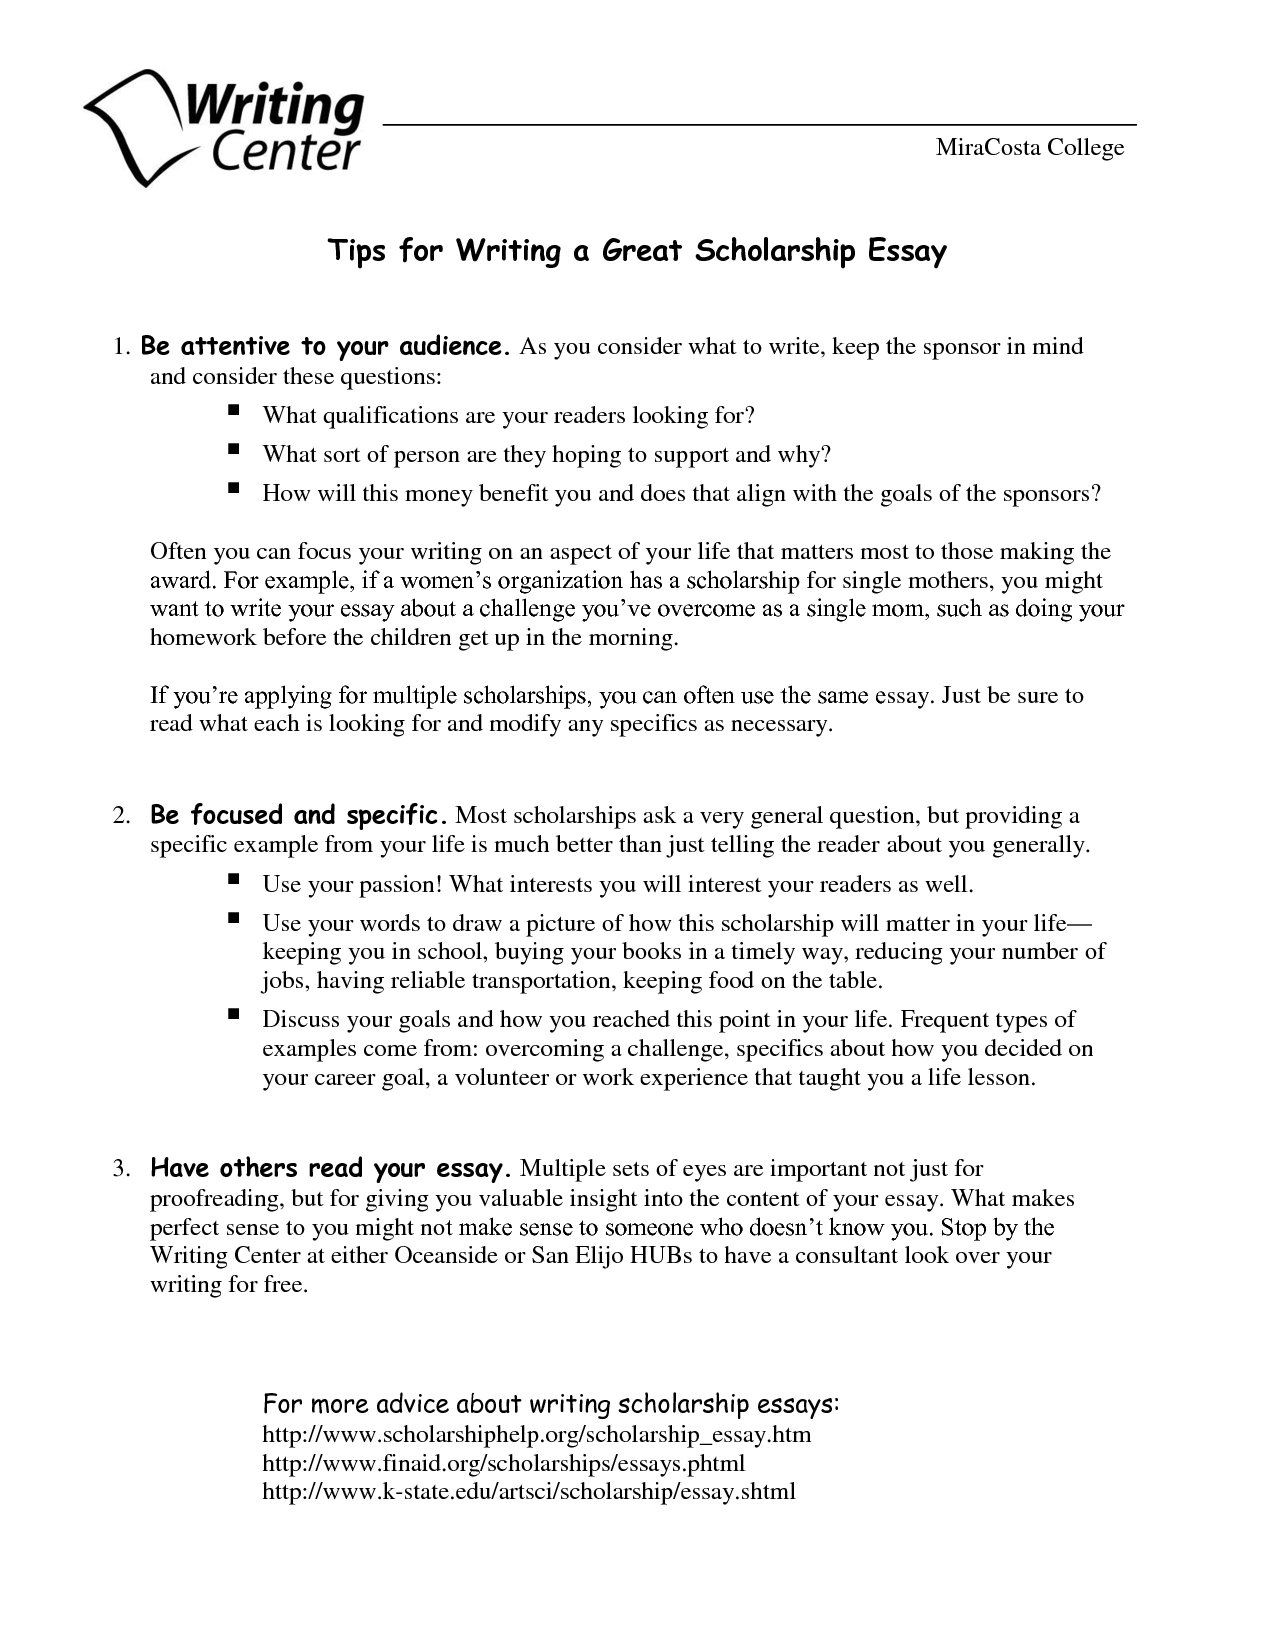 018 Scholarships With Essays N8cudozdpd Essay Singular Without Writing For High School Juniors Class Of 2020 No 2019 Full